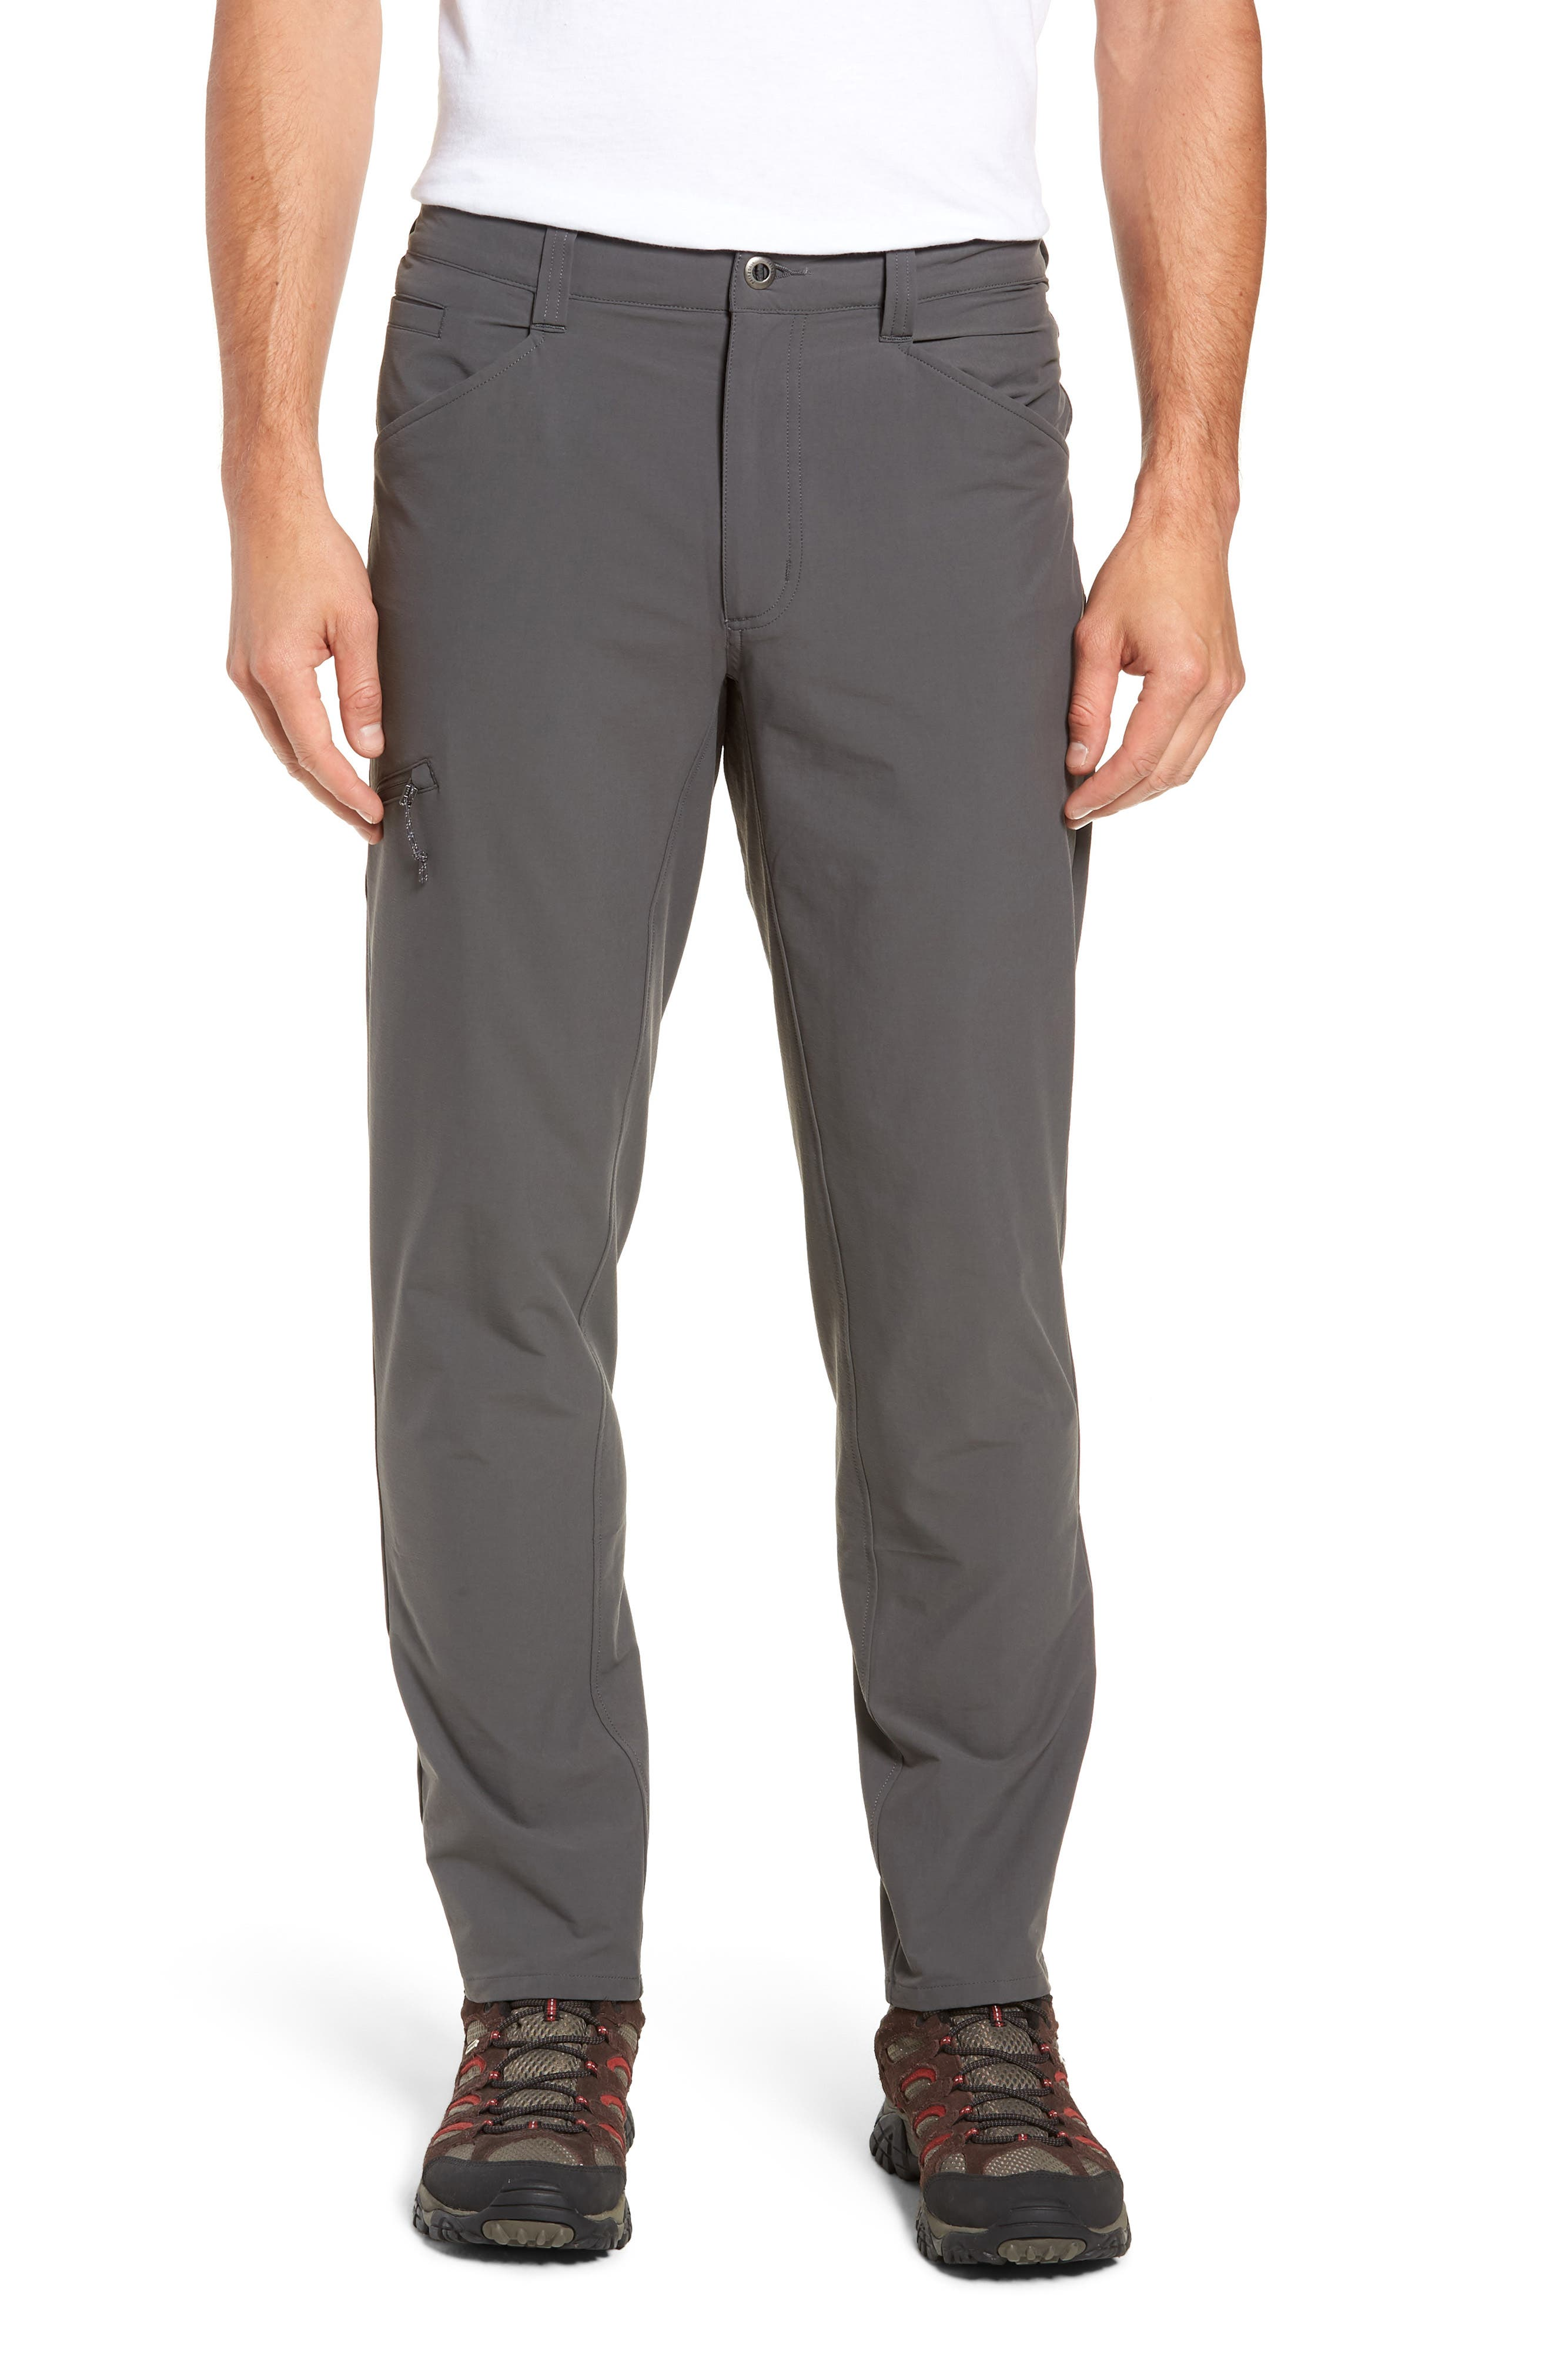 Quandary Pants,                         Main,                         color, FORGE GREY